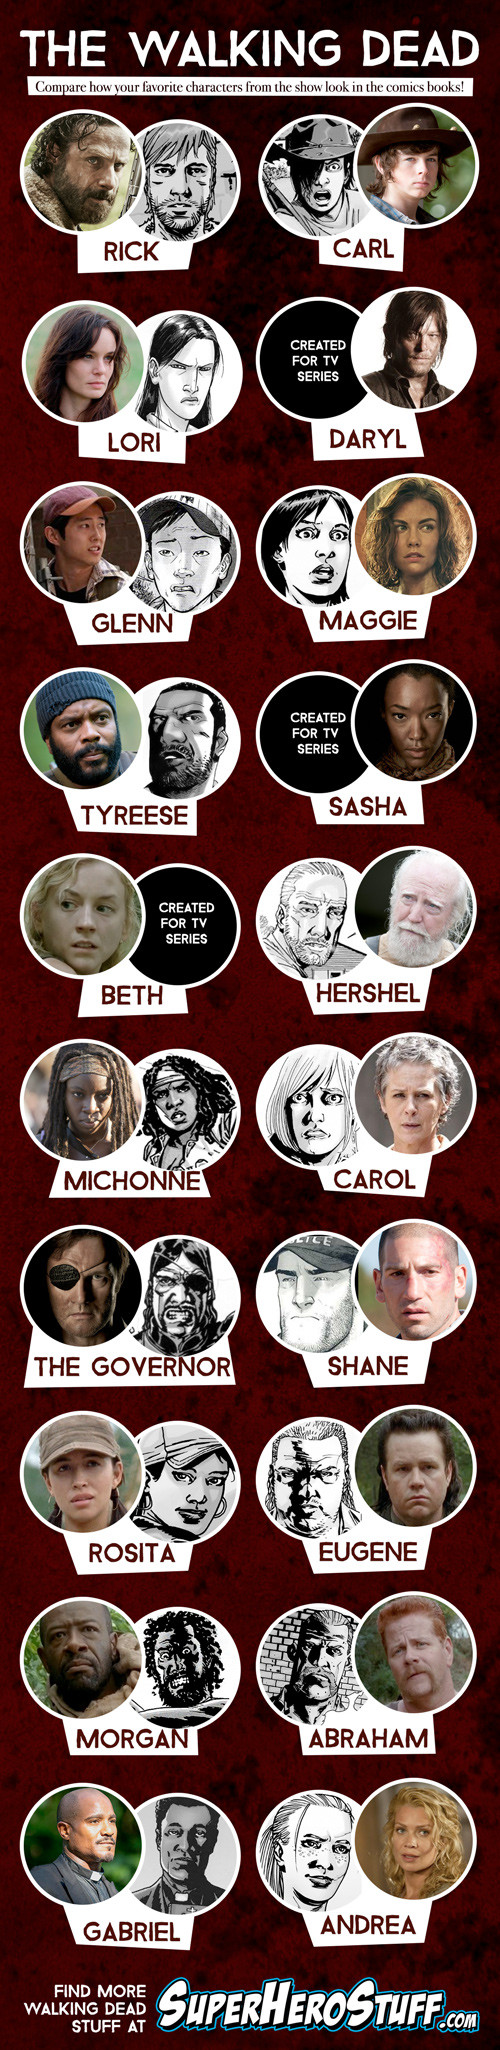 Walking Dead Characters TV vs Comics Infographic